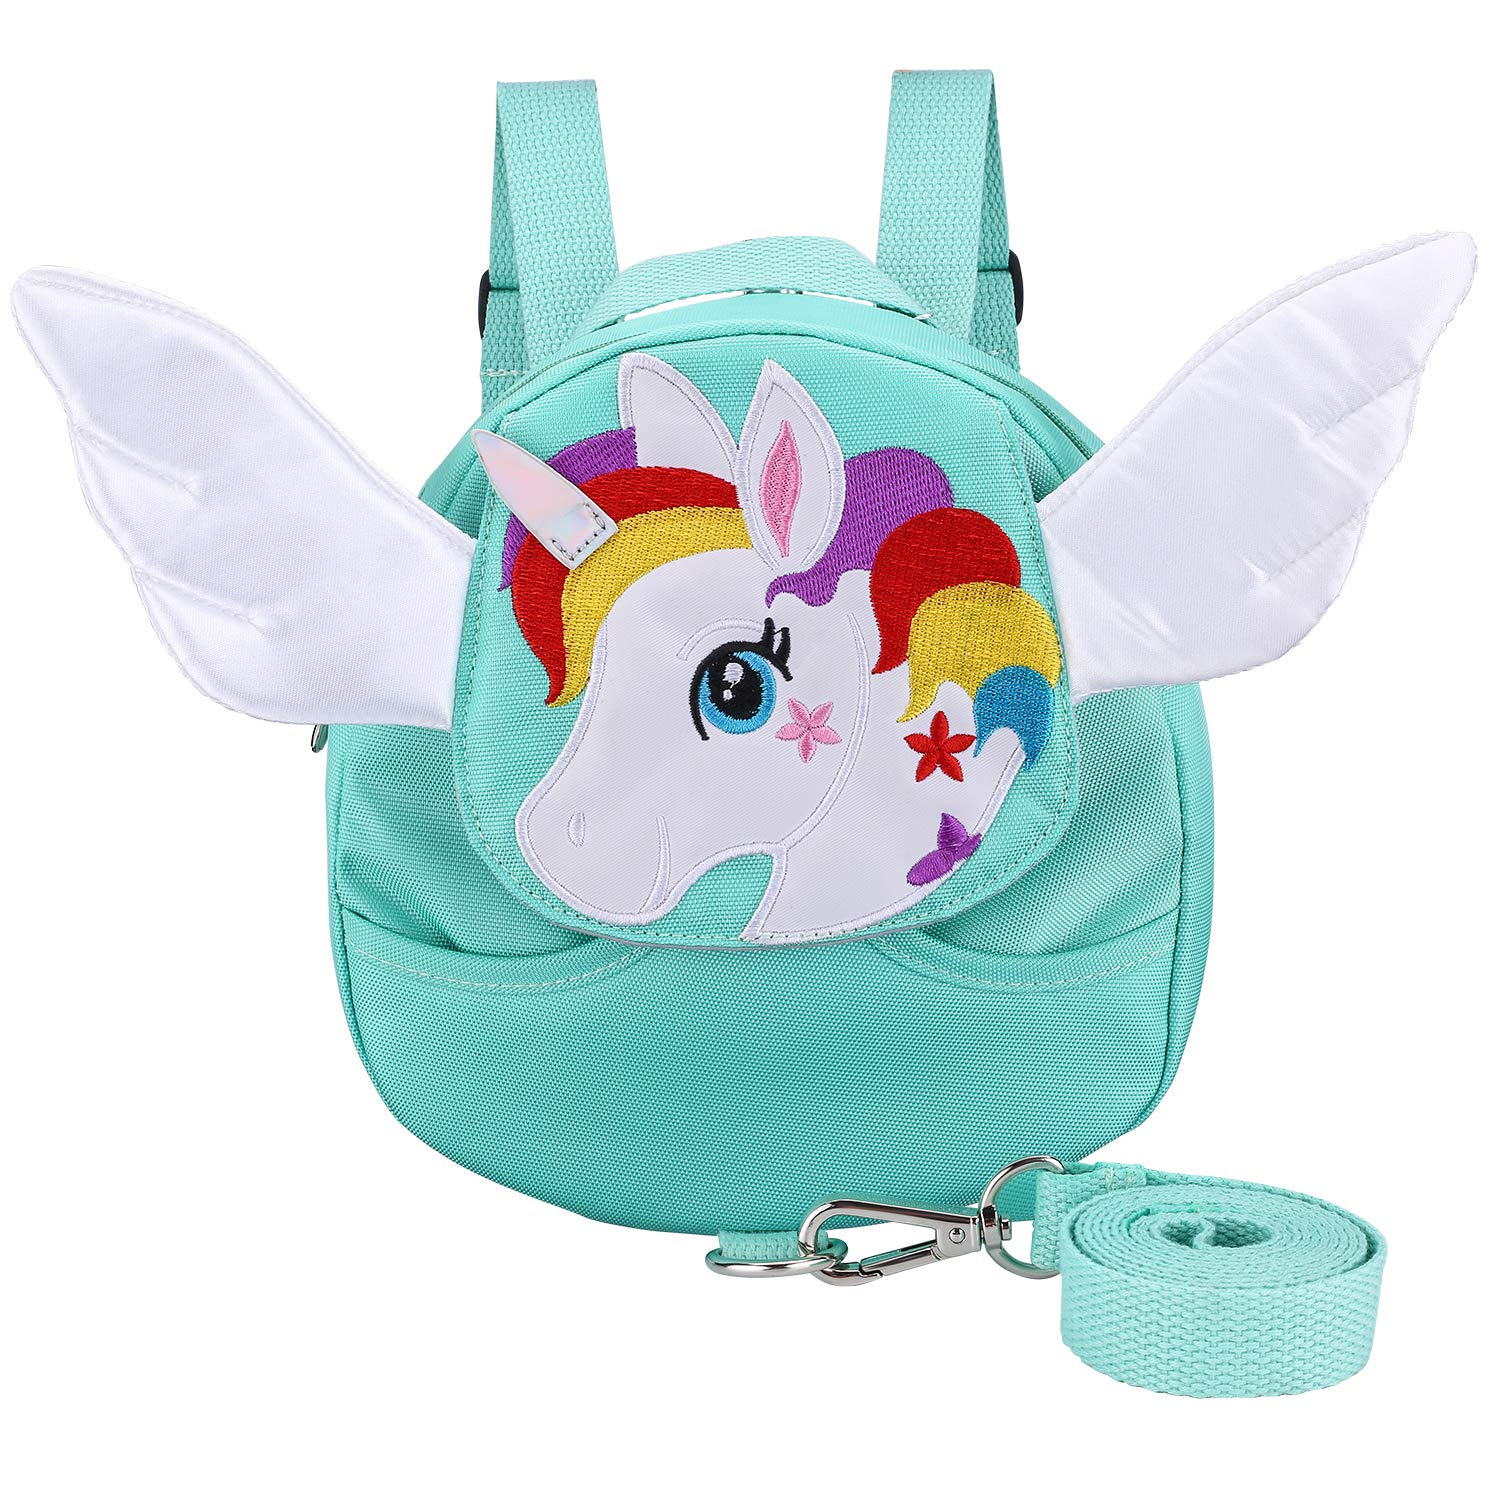 Unicorn Toddler Backpack Toddler Harness Anti- Lost Safety Toddler Leash for Toddlers Age 1-4 Years Old